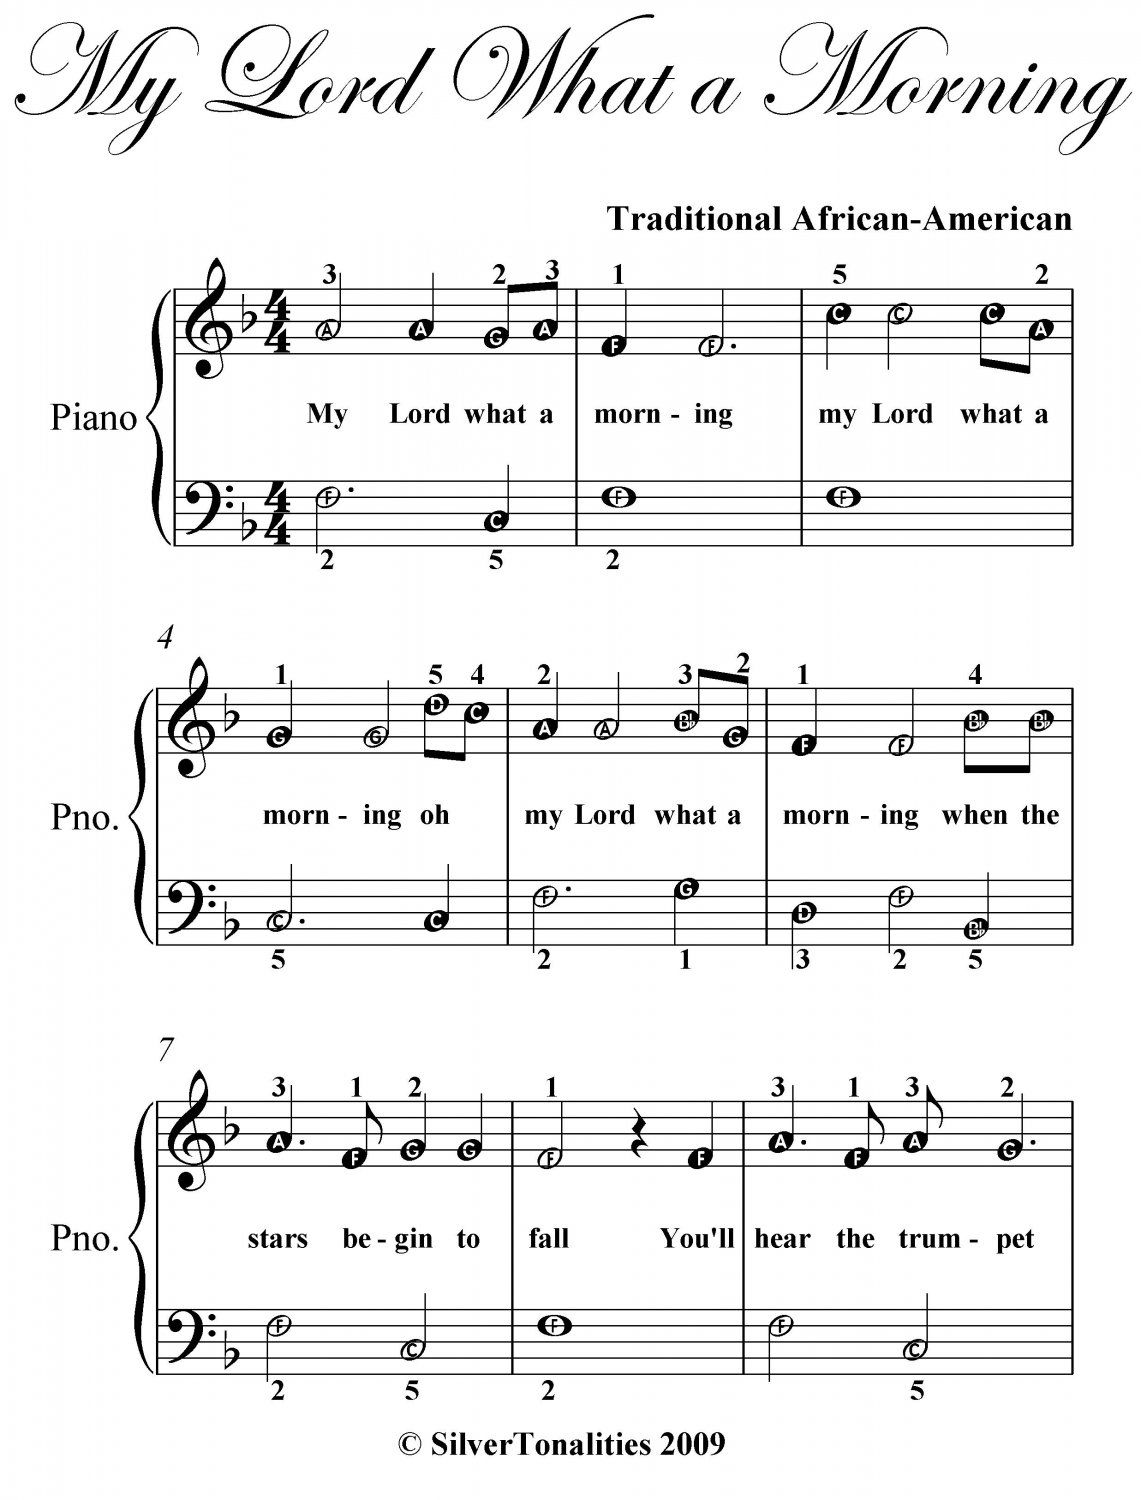 My Lord What a Morning Easy Piano Sheet Music PDF